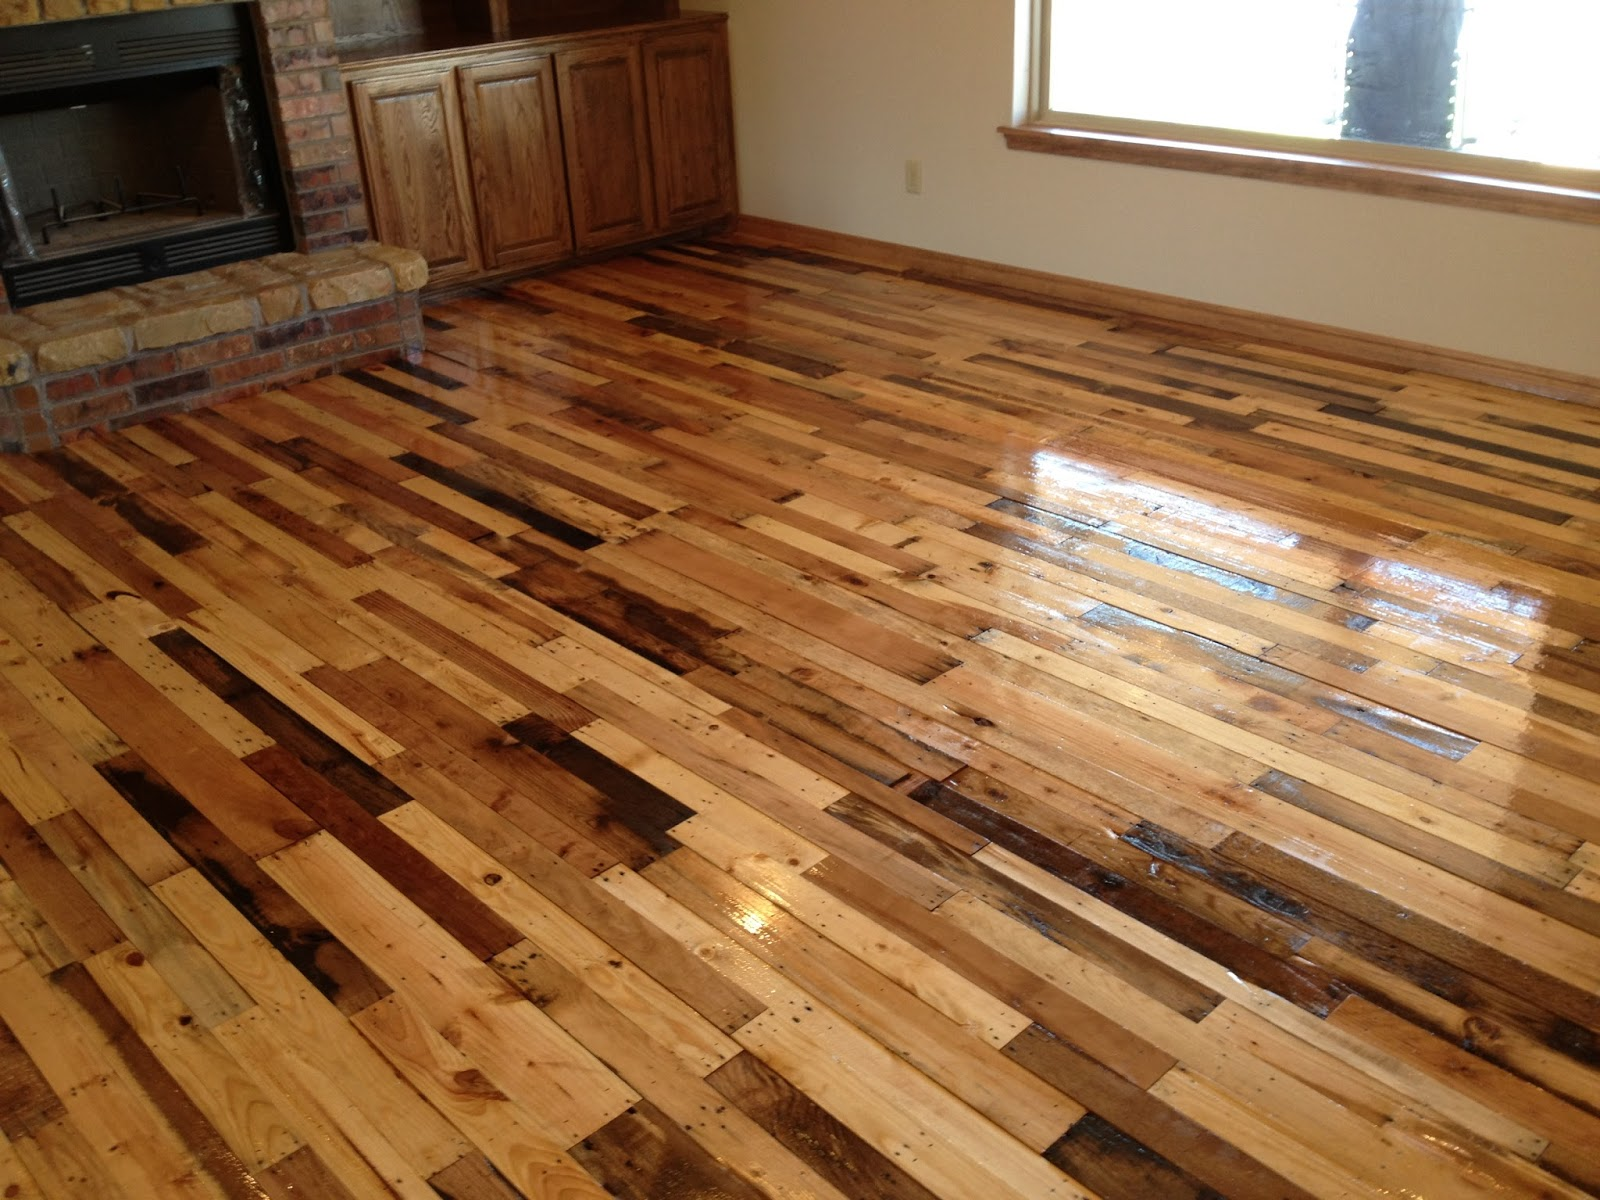 Diy hardwood floor flooring ideas home for Diy wood flooring ideas